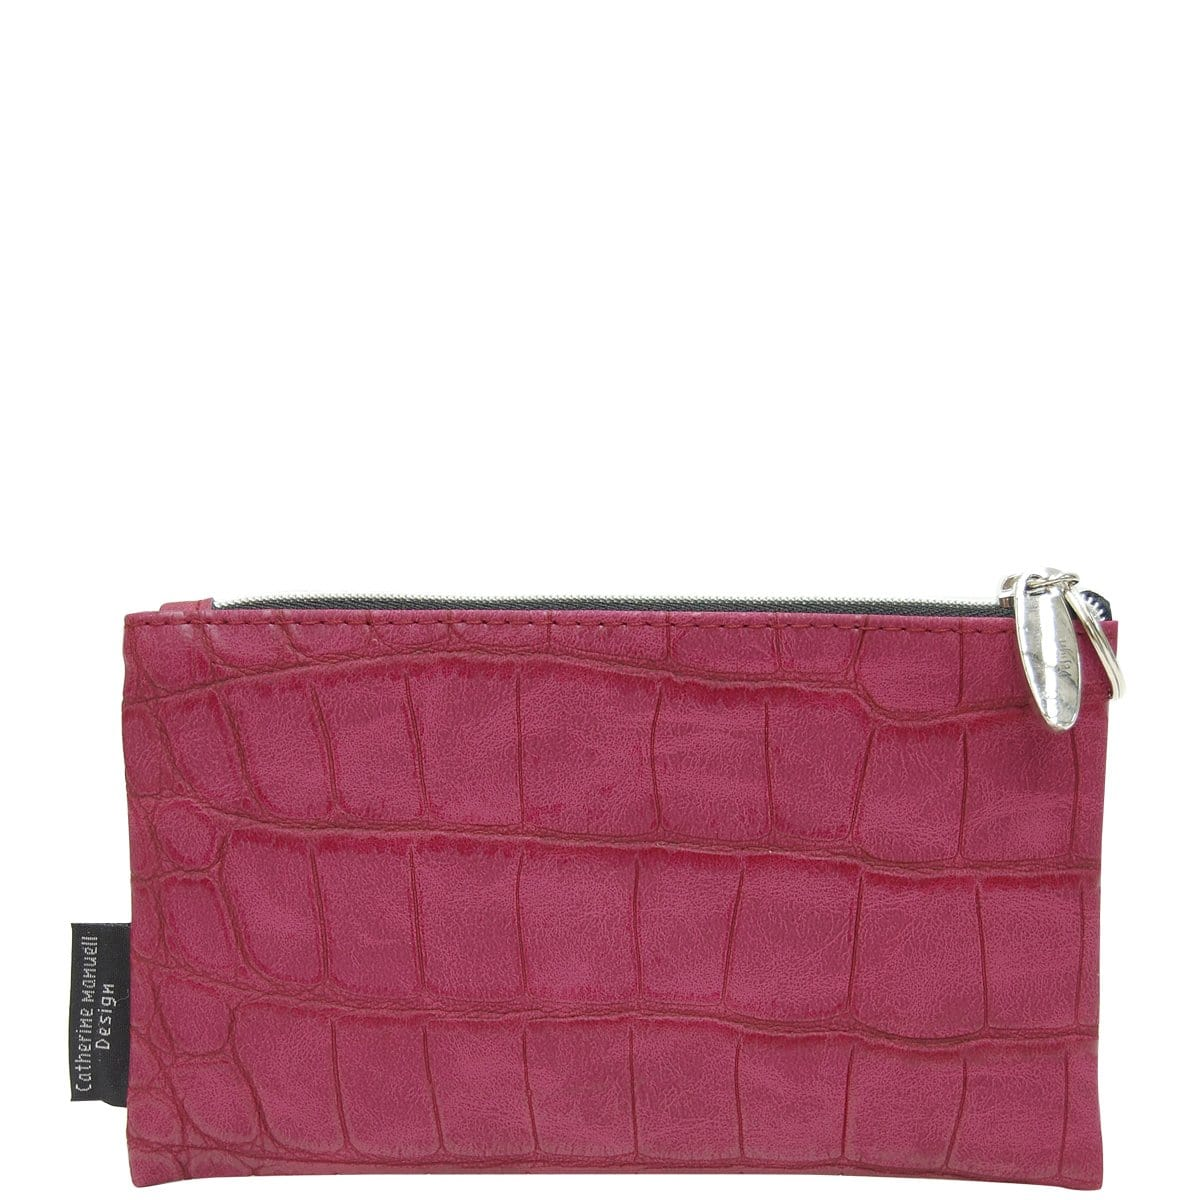 Medium Overflow Purse - Plum Croc